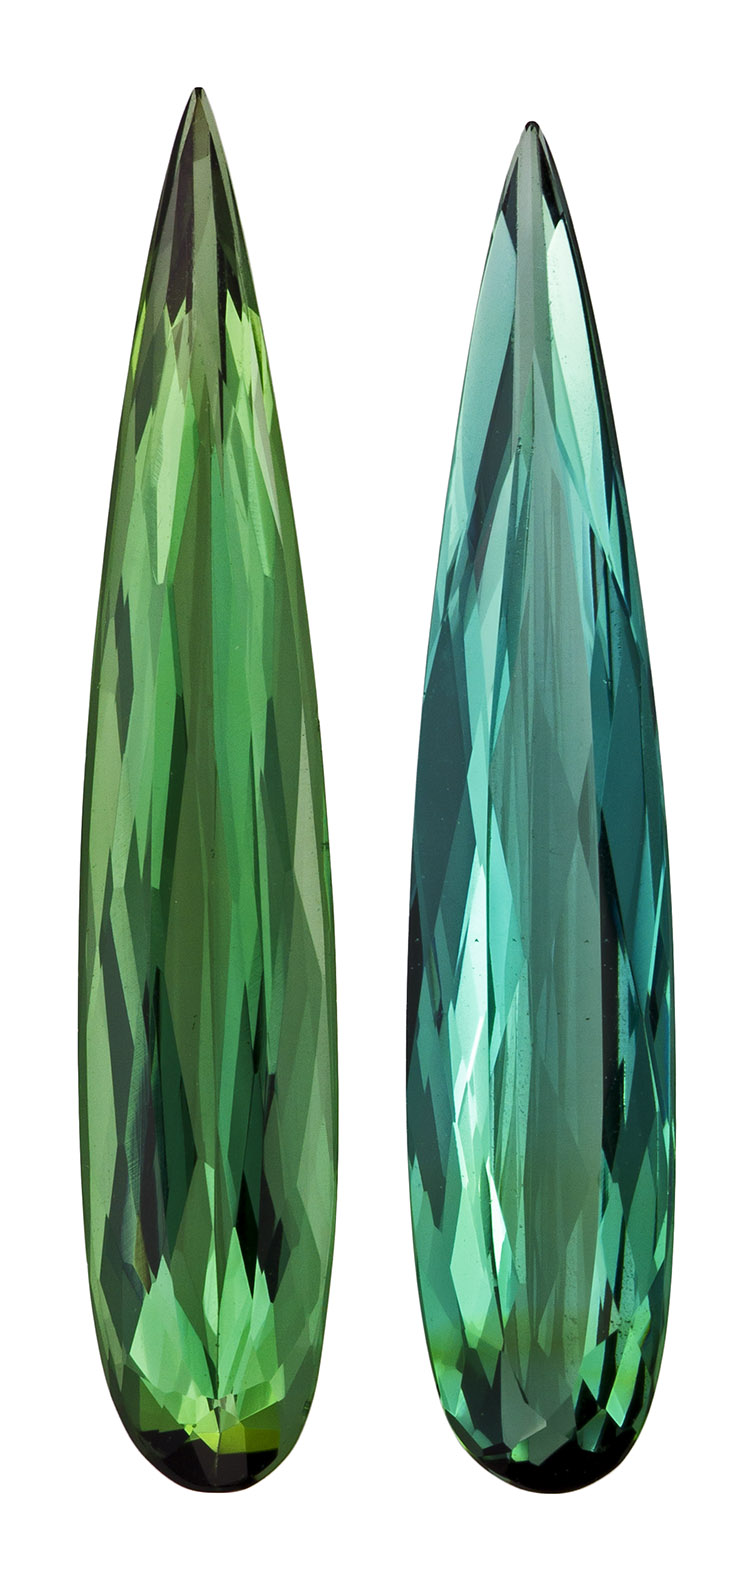 5.98 carats Green Tourmaline 2 Piece Matched Pair in Pear Cut, Rich Blue Green, 23.5 x 5.7 mm